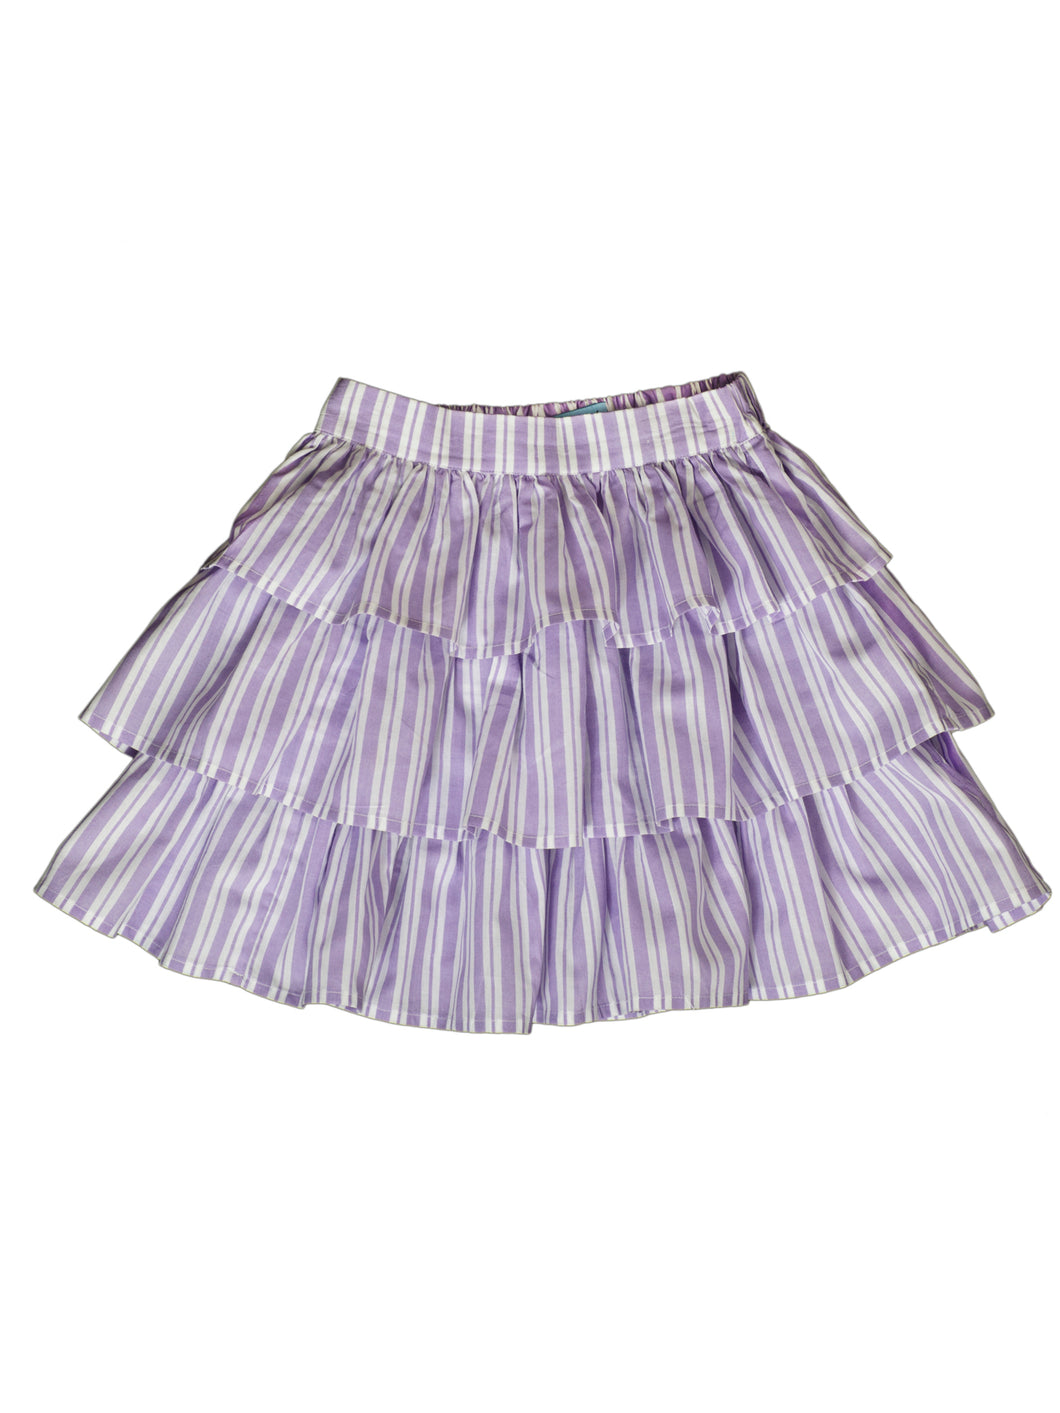 Elif skirt, purple stripe